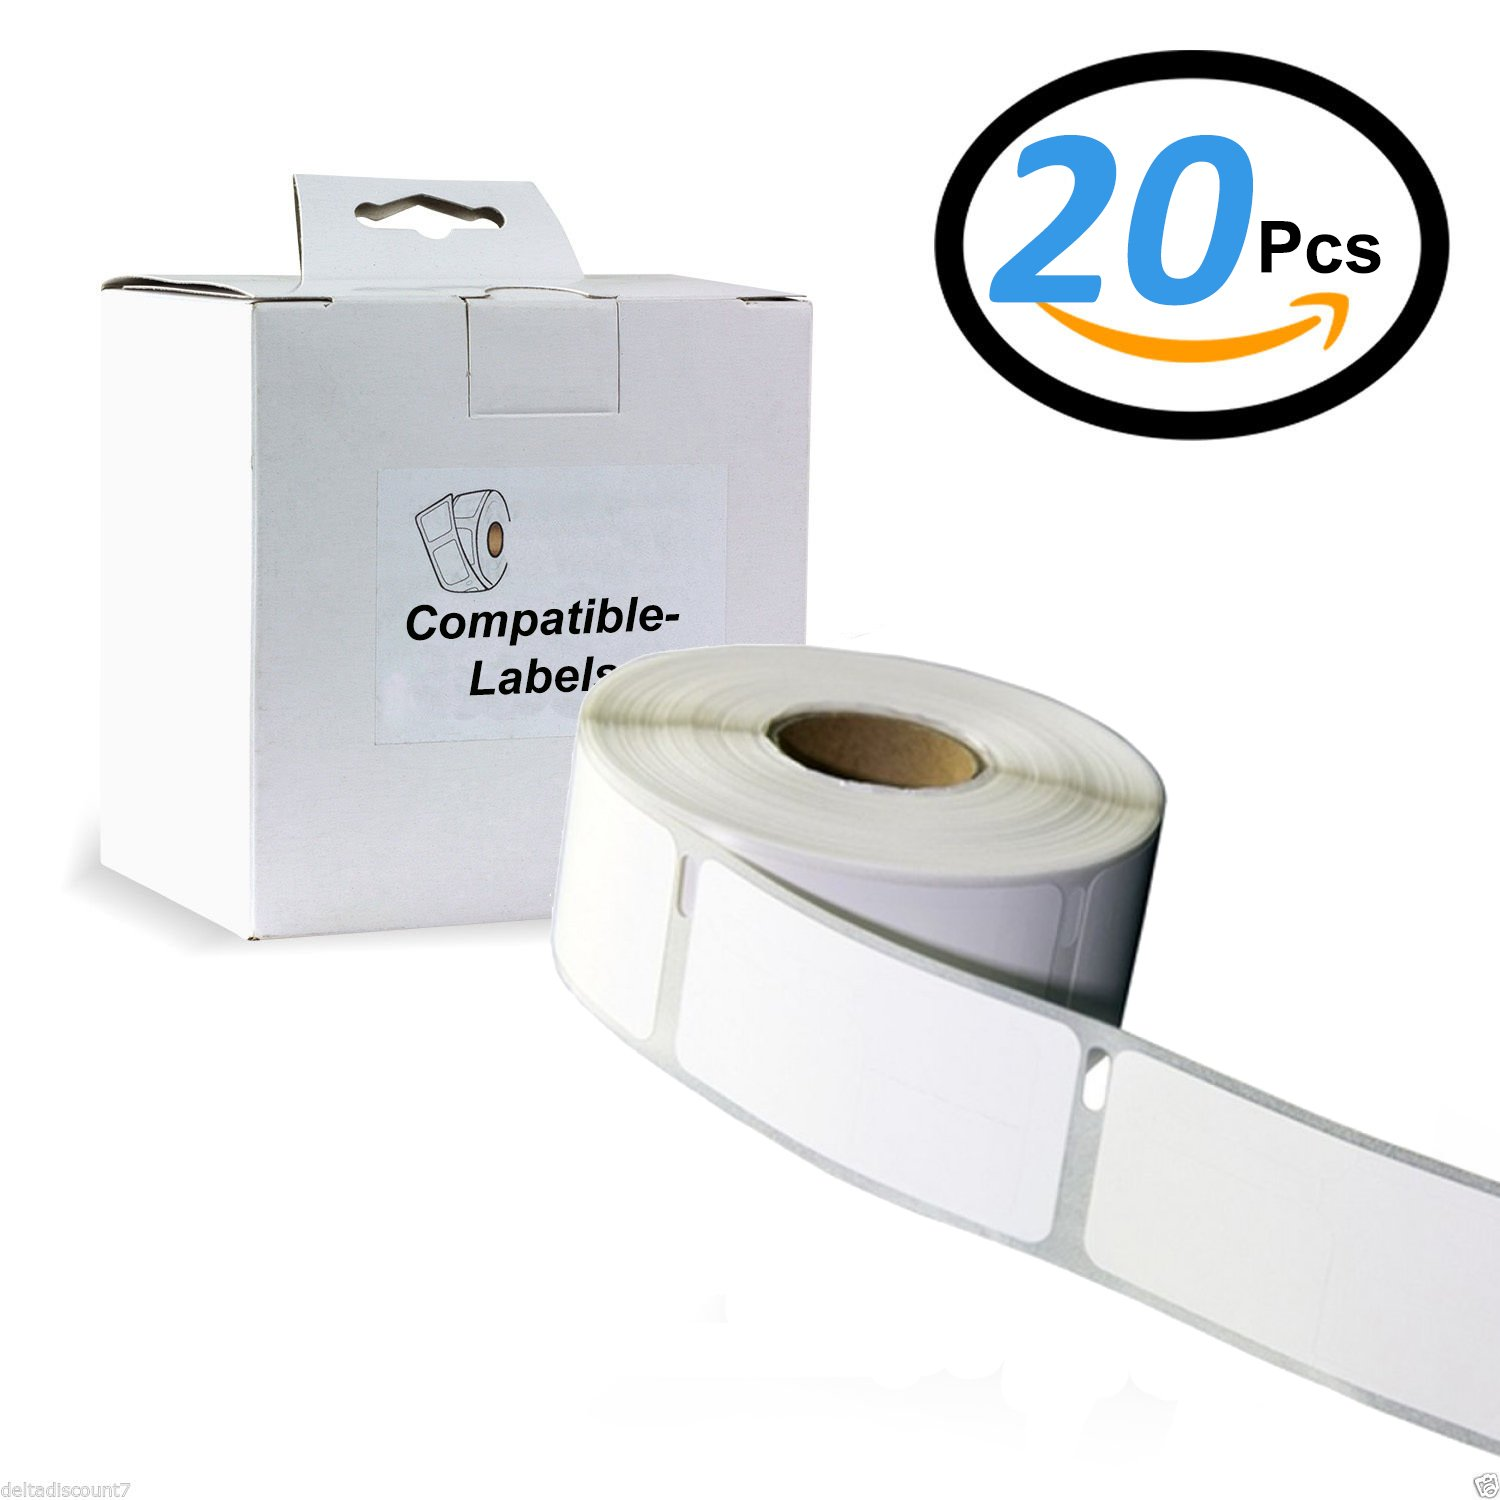 20 X Colour Direct 11352 White Address Labels ( 25mm x 54mm ) Compatible For All Dymo Label Writers : 310, 320, 330, 330 Turbo, 400, 400 Turbo, 400 Twin Turbo, 400 Duo, 450, 450 Turbo, 450 Twin Turbo, 450 Duo, 4XL, EL40, EL60, Seiko SLP 100, 120, 200, 220,